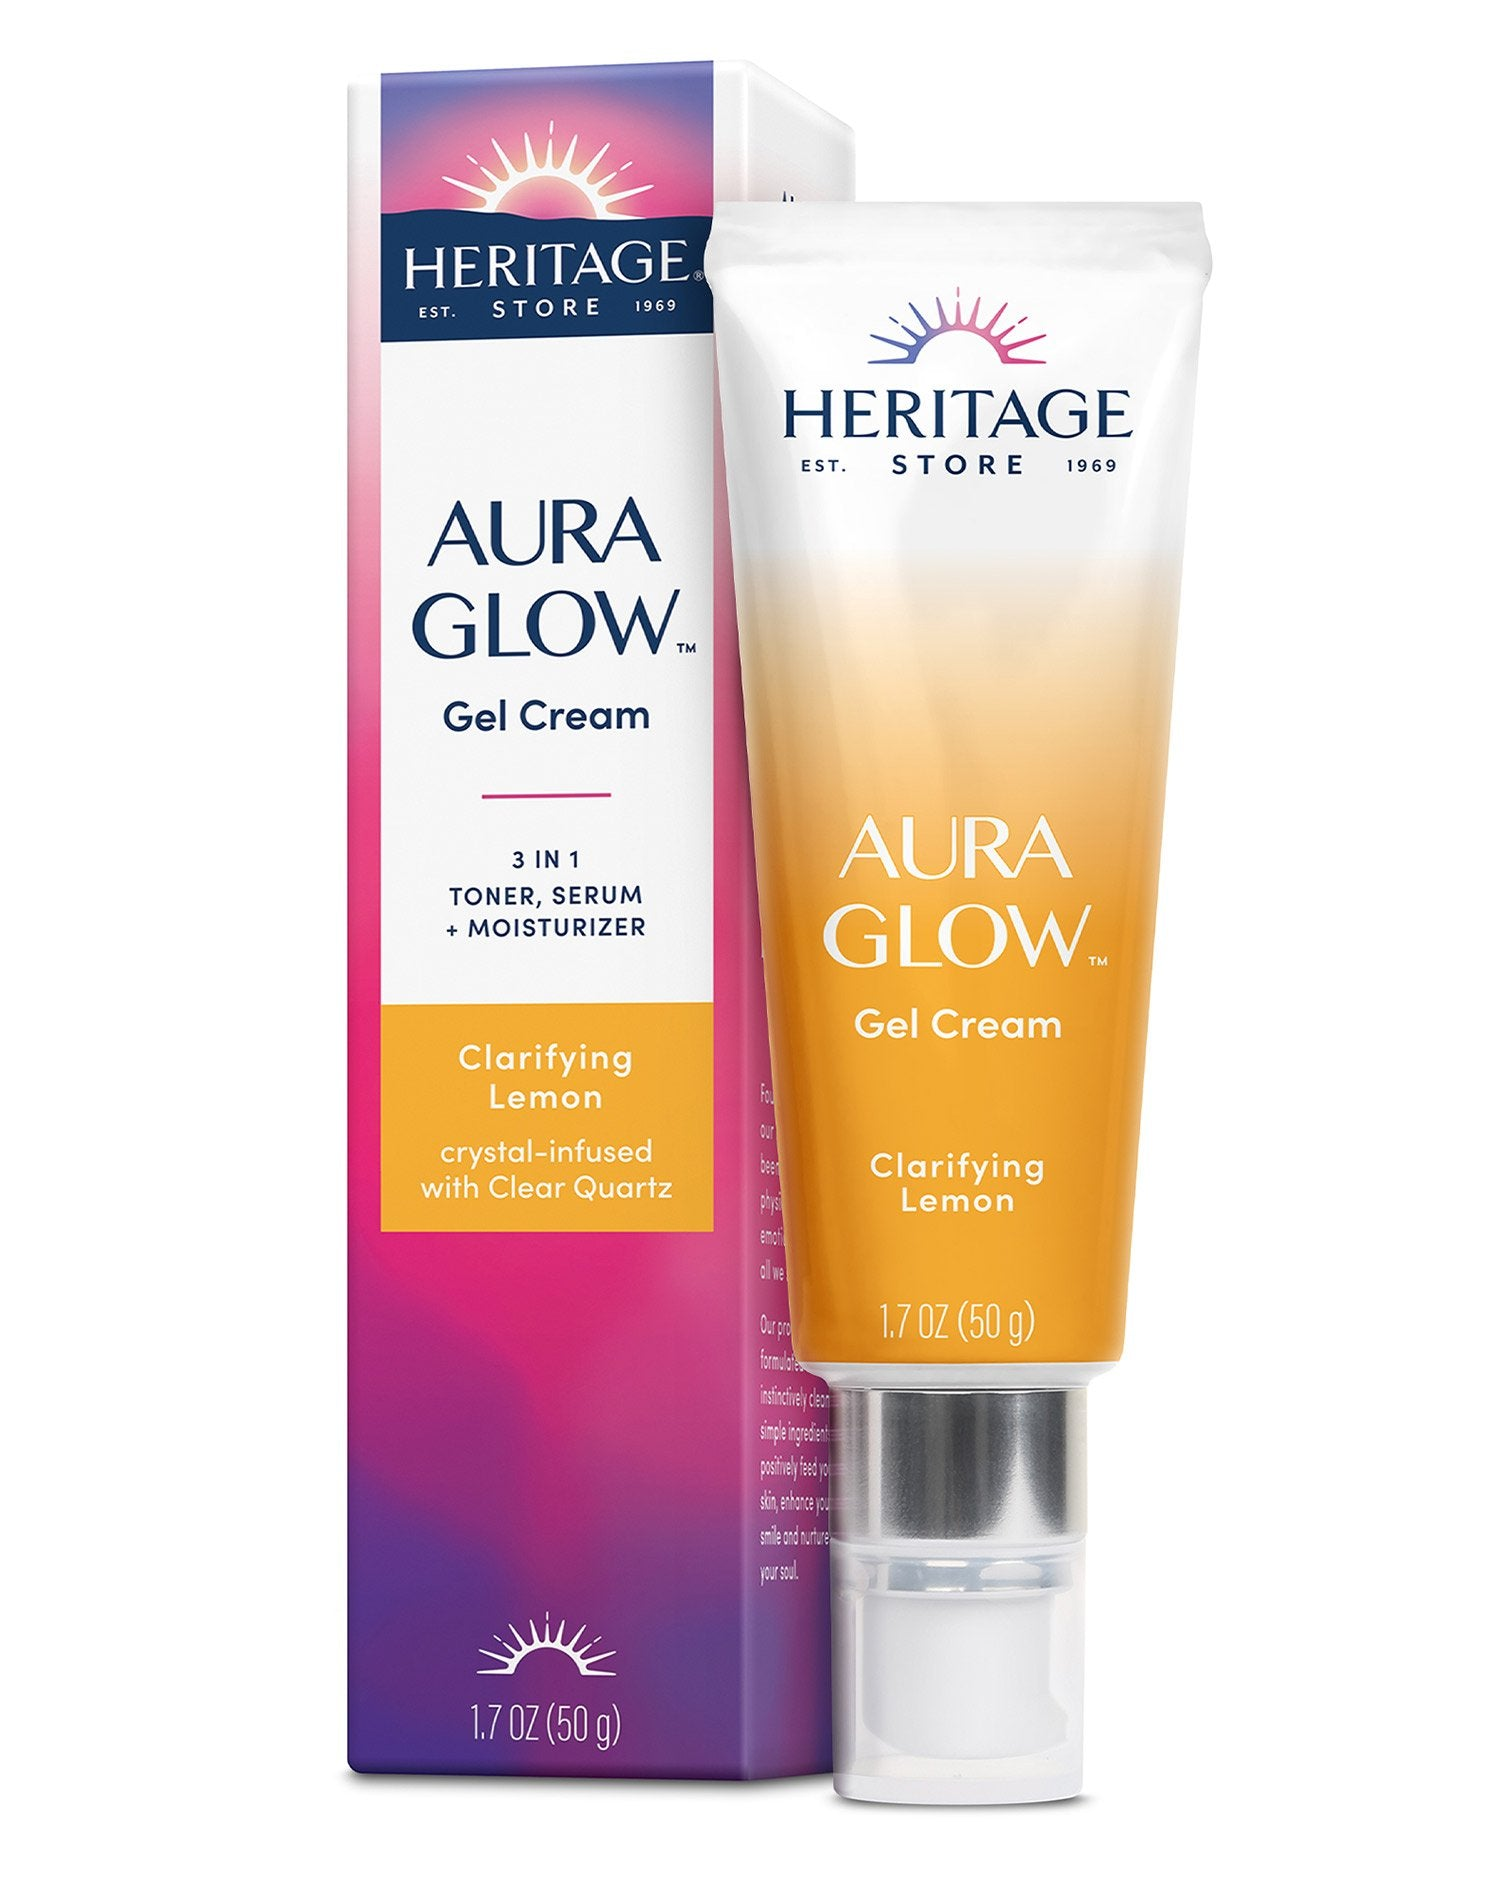 Aura Glow Gel Cream, Clarifying Lemon